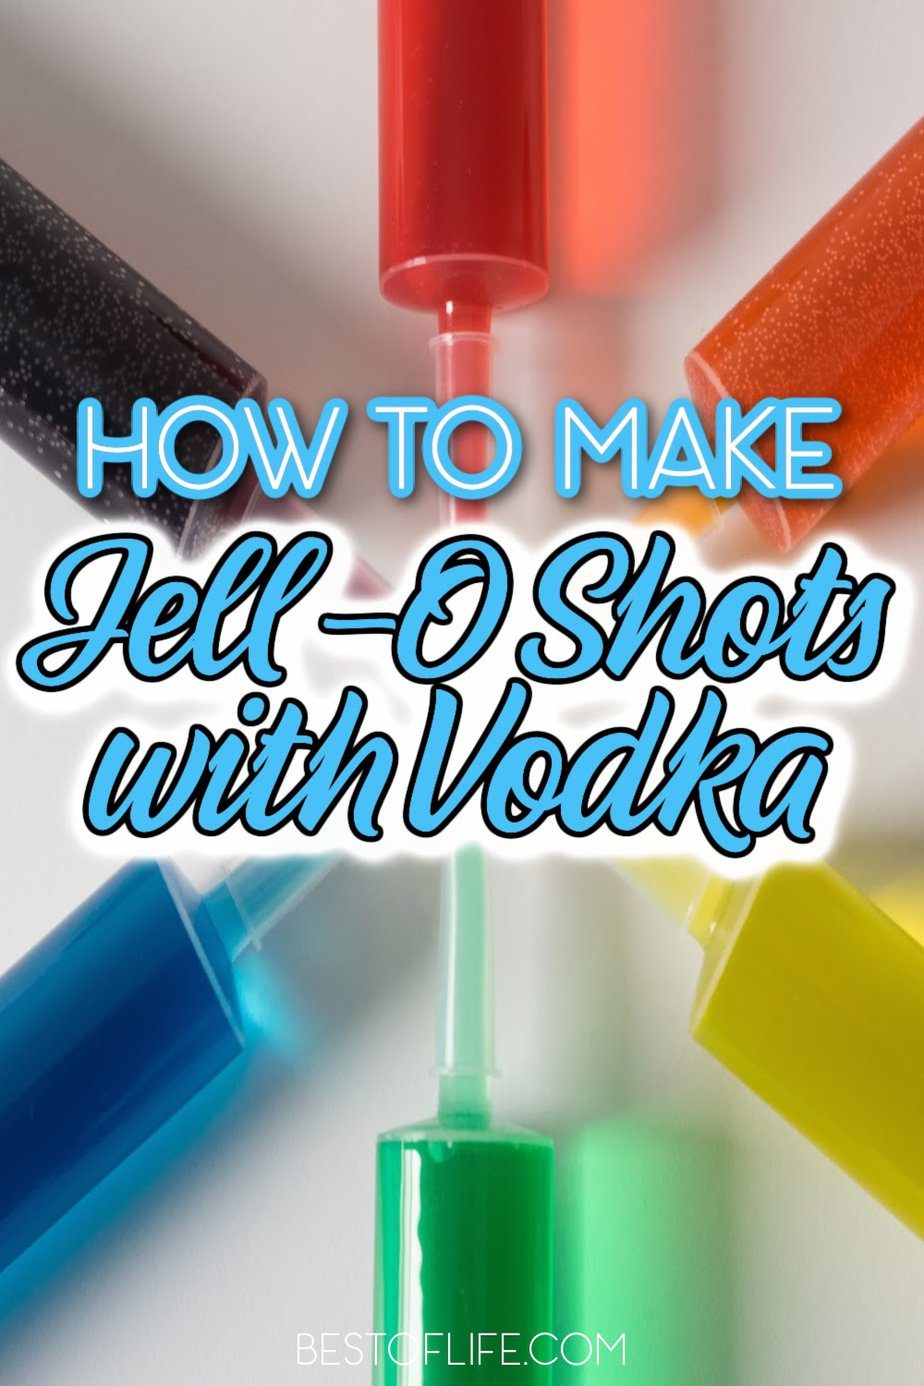 Once you know how to make jello shots with vodka, you can use that knowledge to add some fun to any party you throw throughout the year. Change the colors for the type of party and let the fun begin! Jello Shots Recipe |Party Recipes | Recipes for a Crowd | Adult Recipes | Bachelorette Party Ideas | Bachelor Party Ideas | Drink Recipes for Parties | Cocktail Recipes for a Crowd #partyrecipes #jelloshots via @thebestoflife